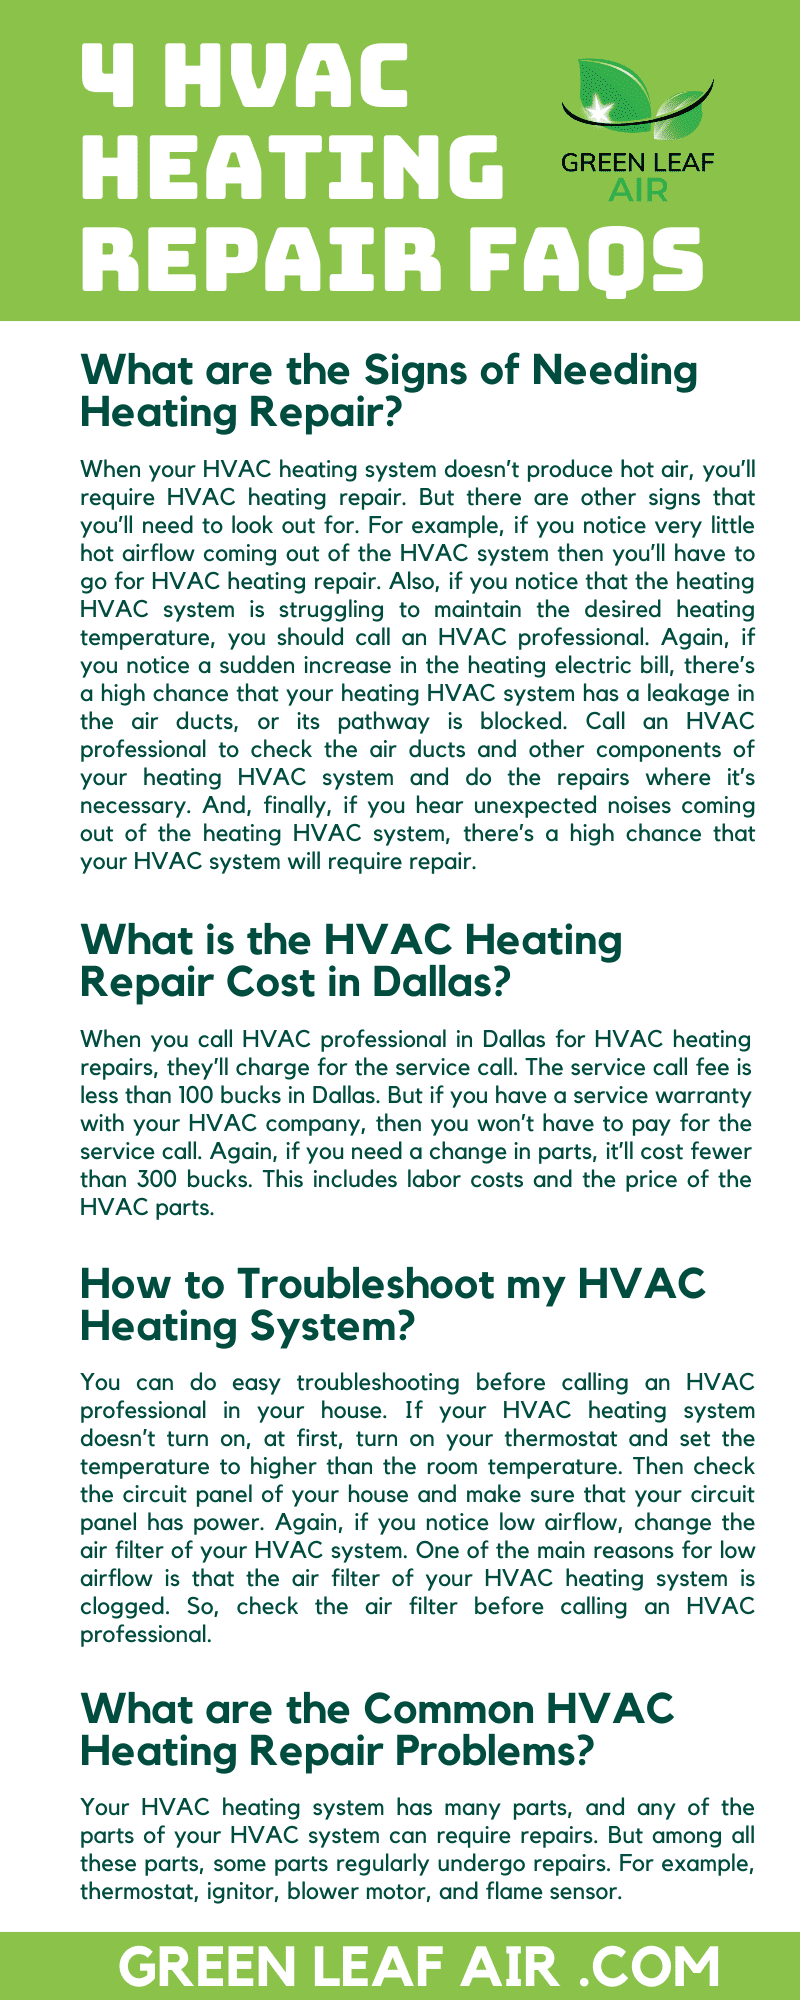 4 HVAC Heating Repair FAQs